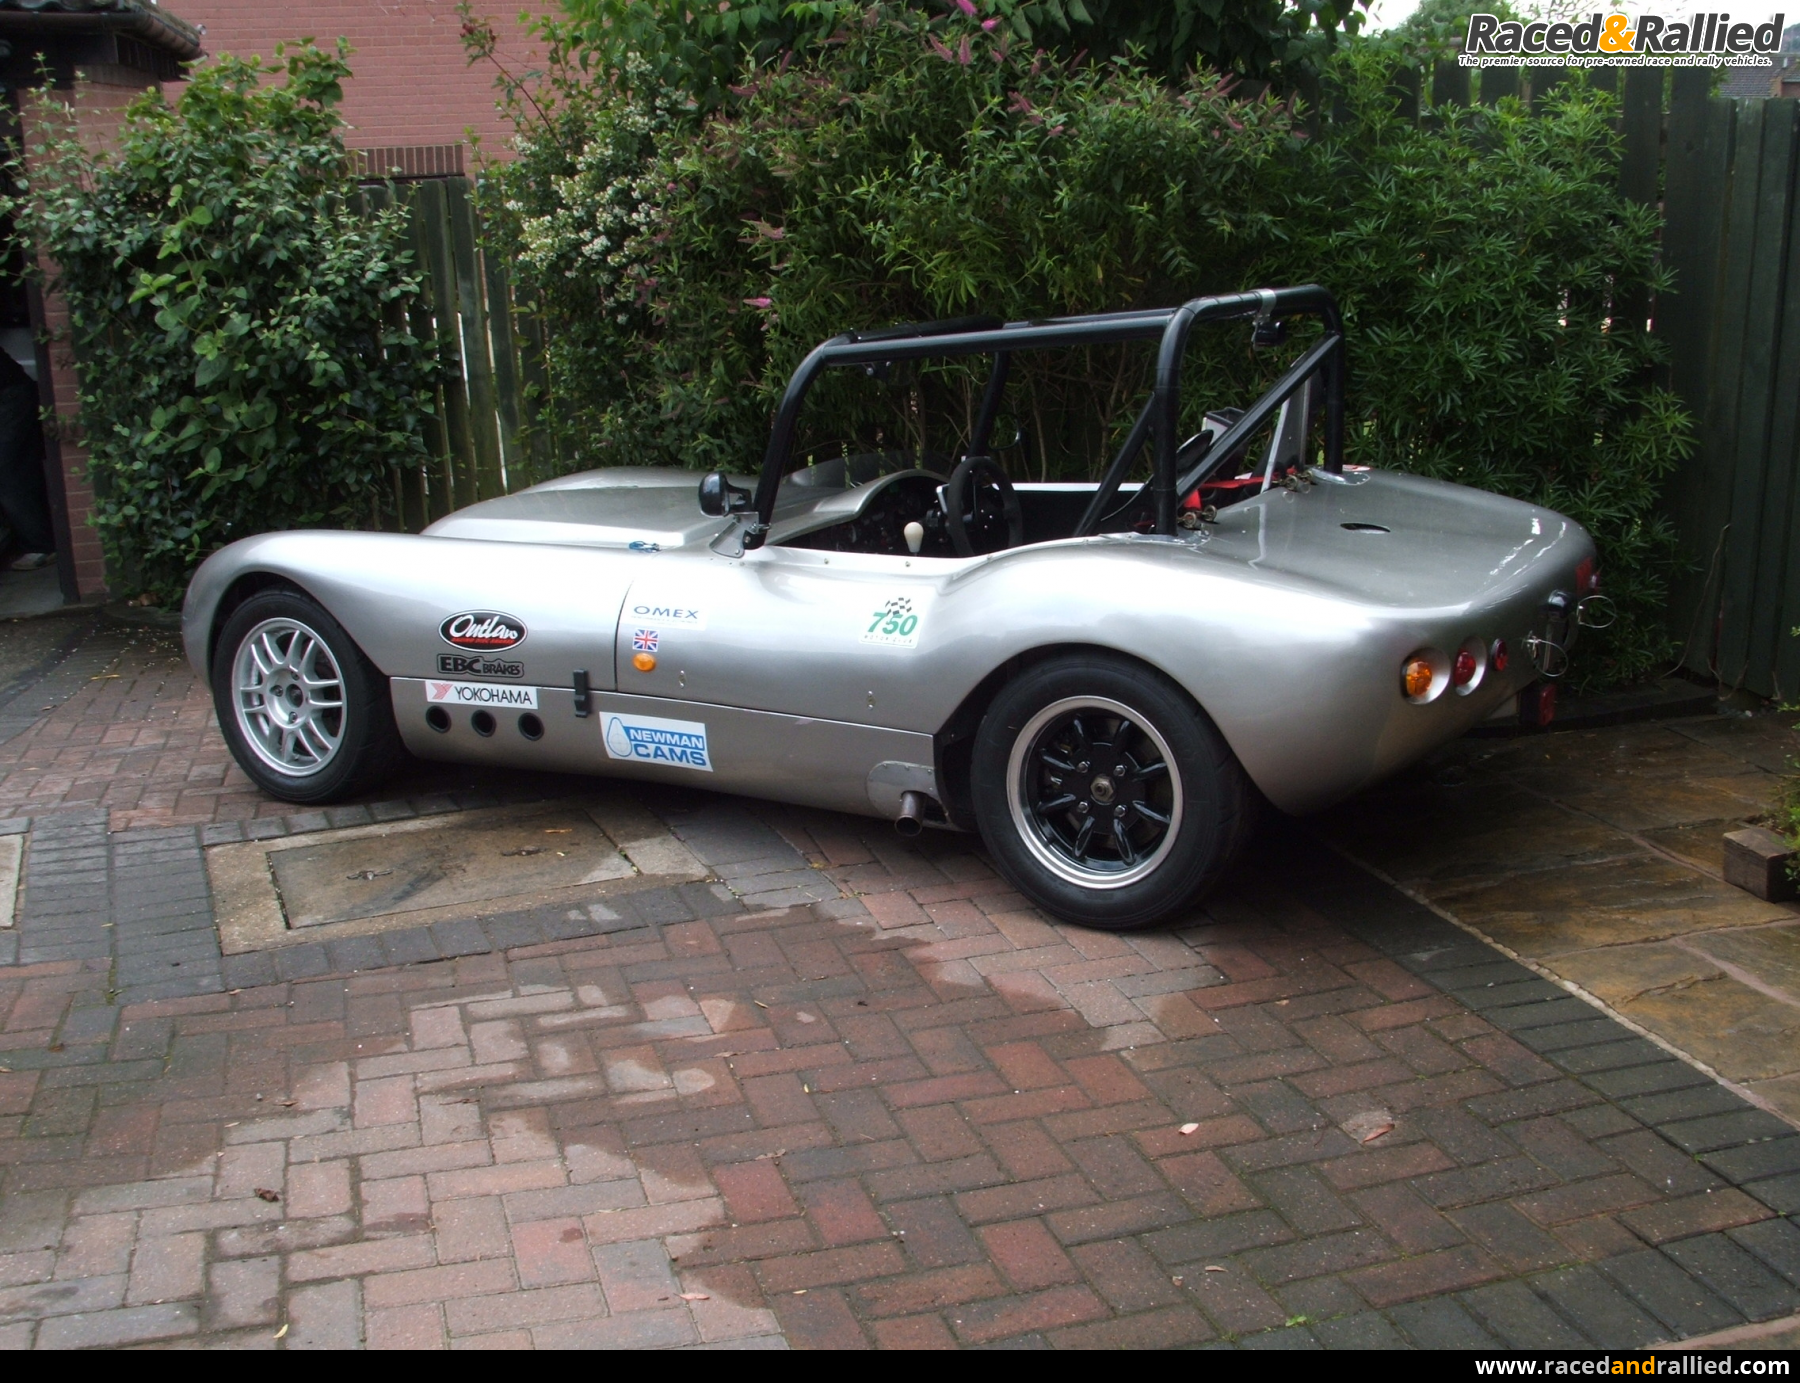 STM Phoenix | other kit cars for sale at Raced & Rallied | rally ...